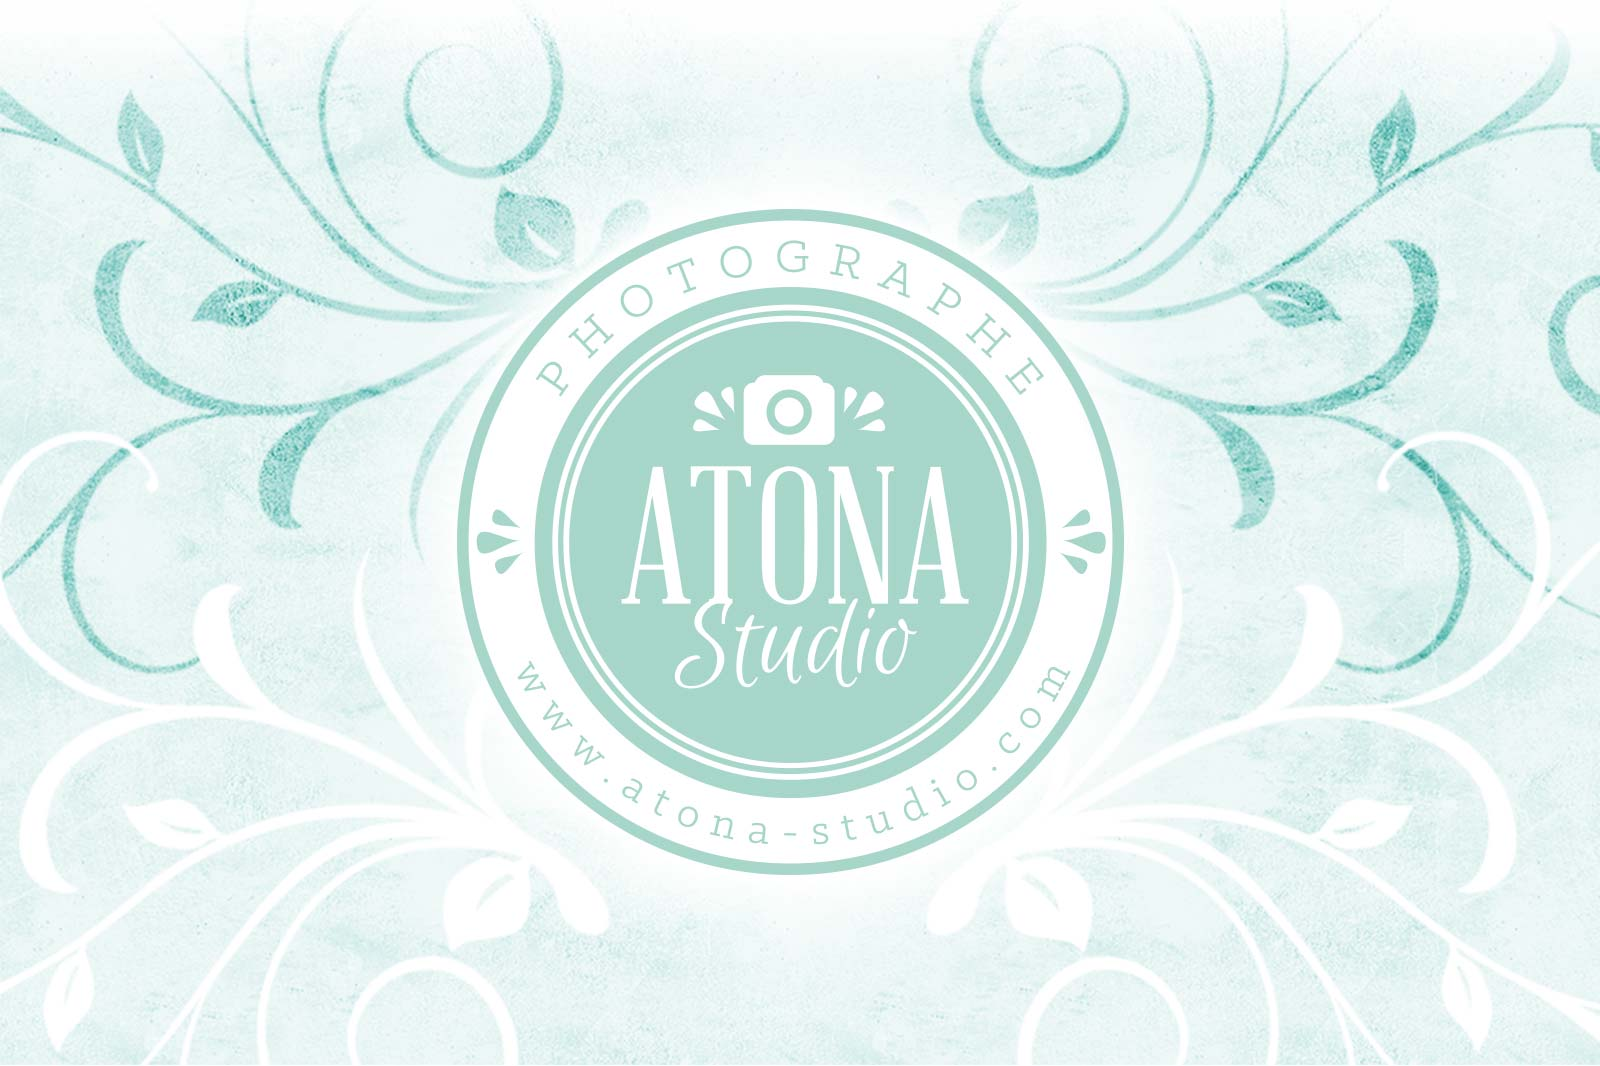 Atona Studio - Photographe